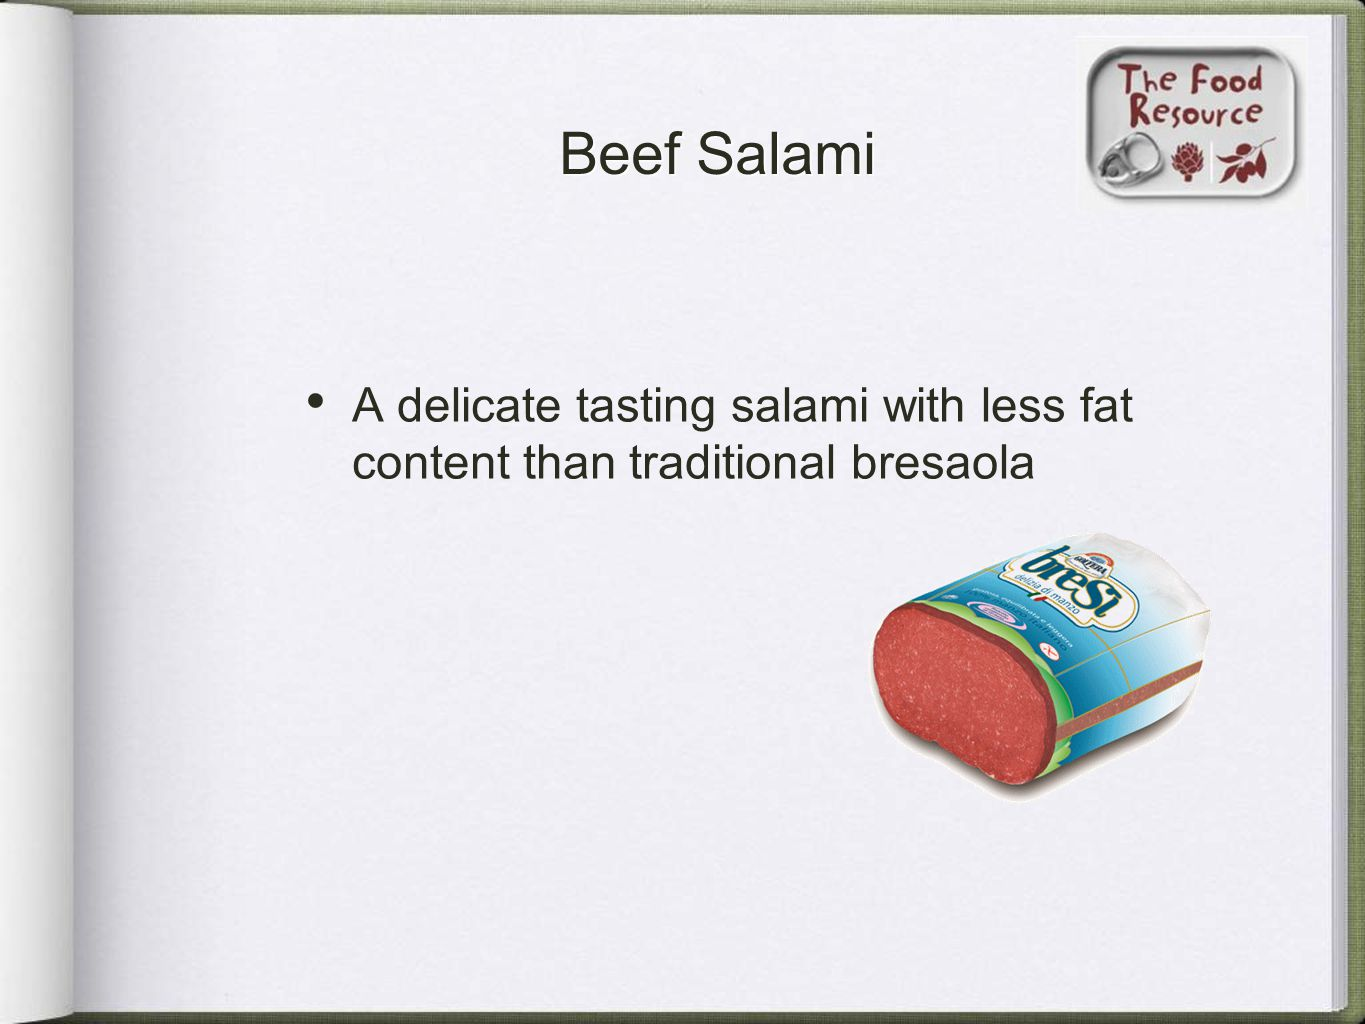 Beef Salami A delicate tasting salami with less fat content than traditional bresaola